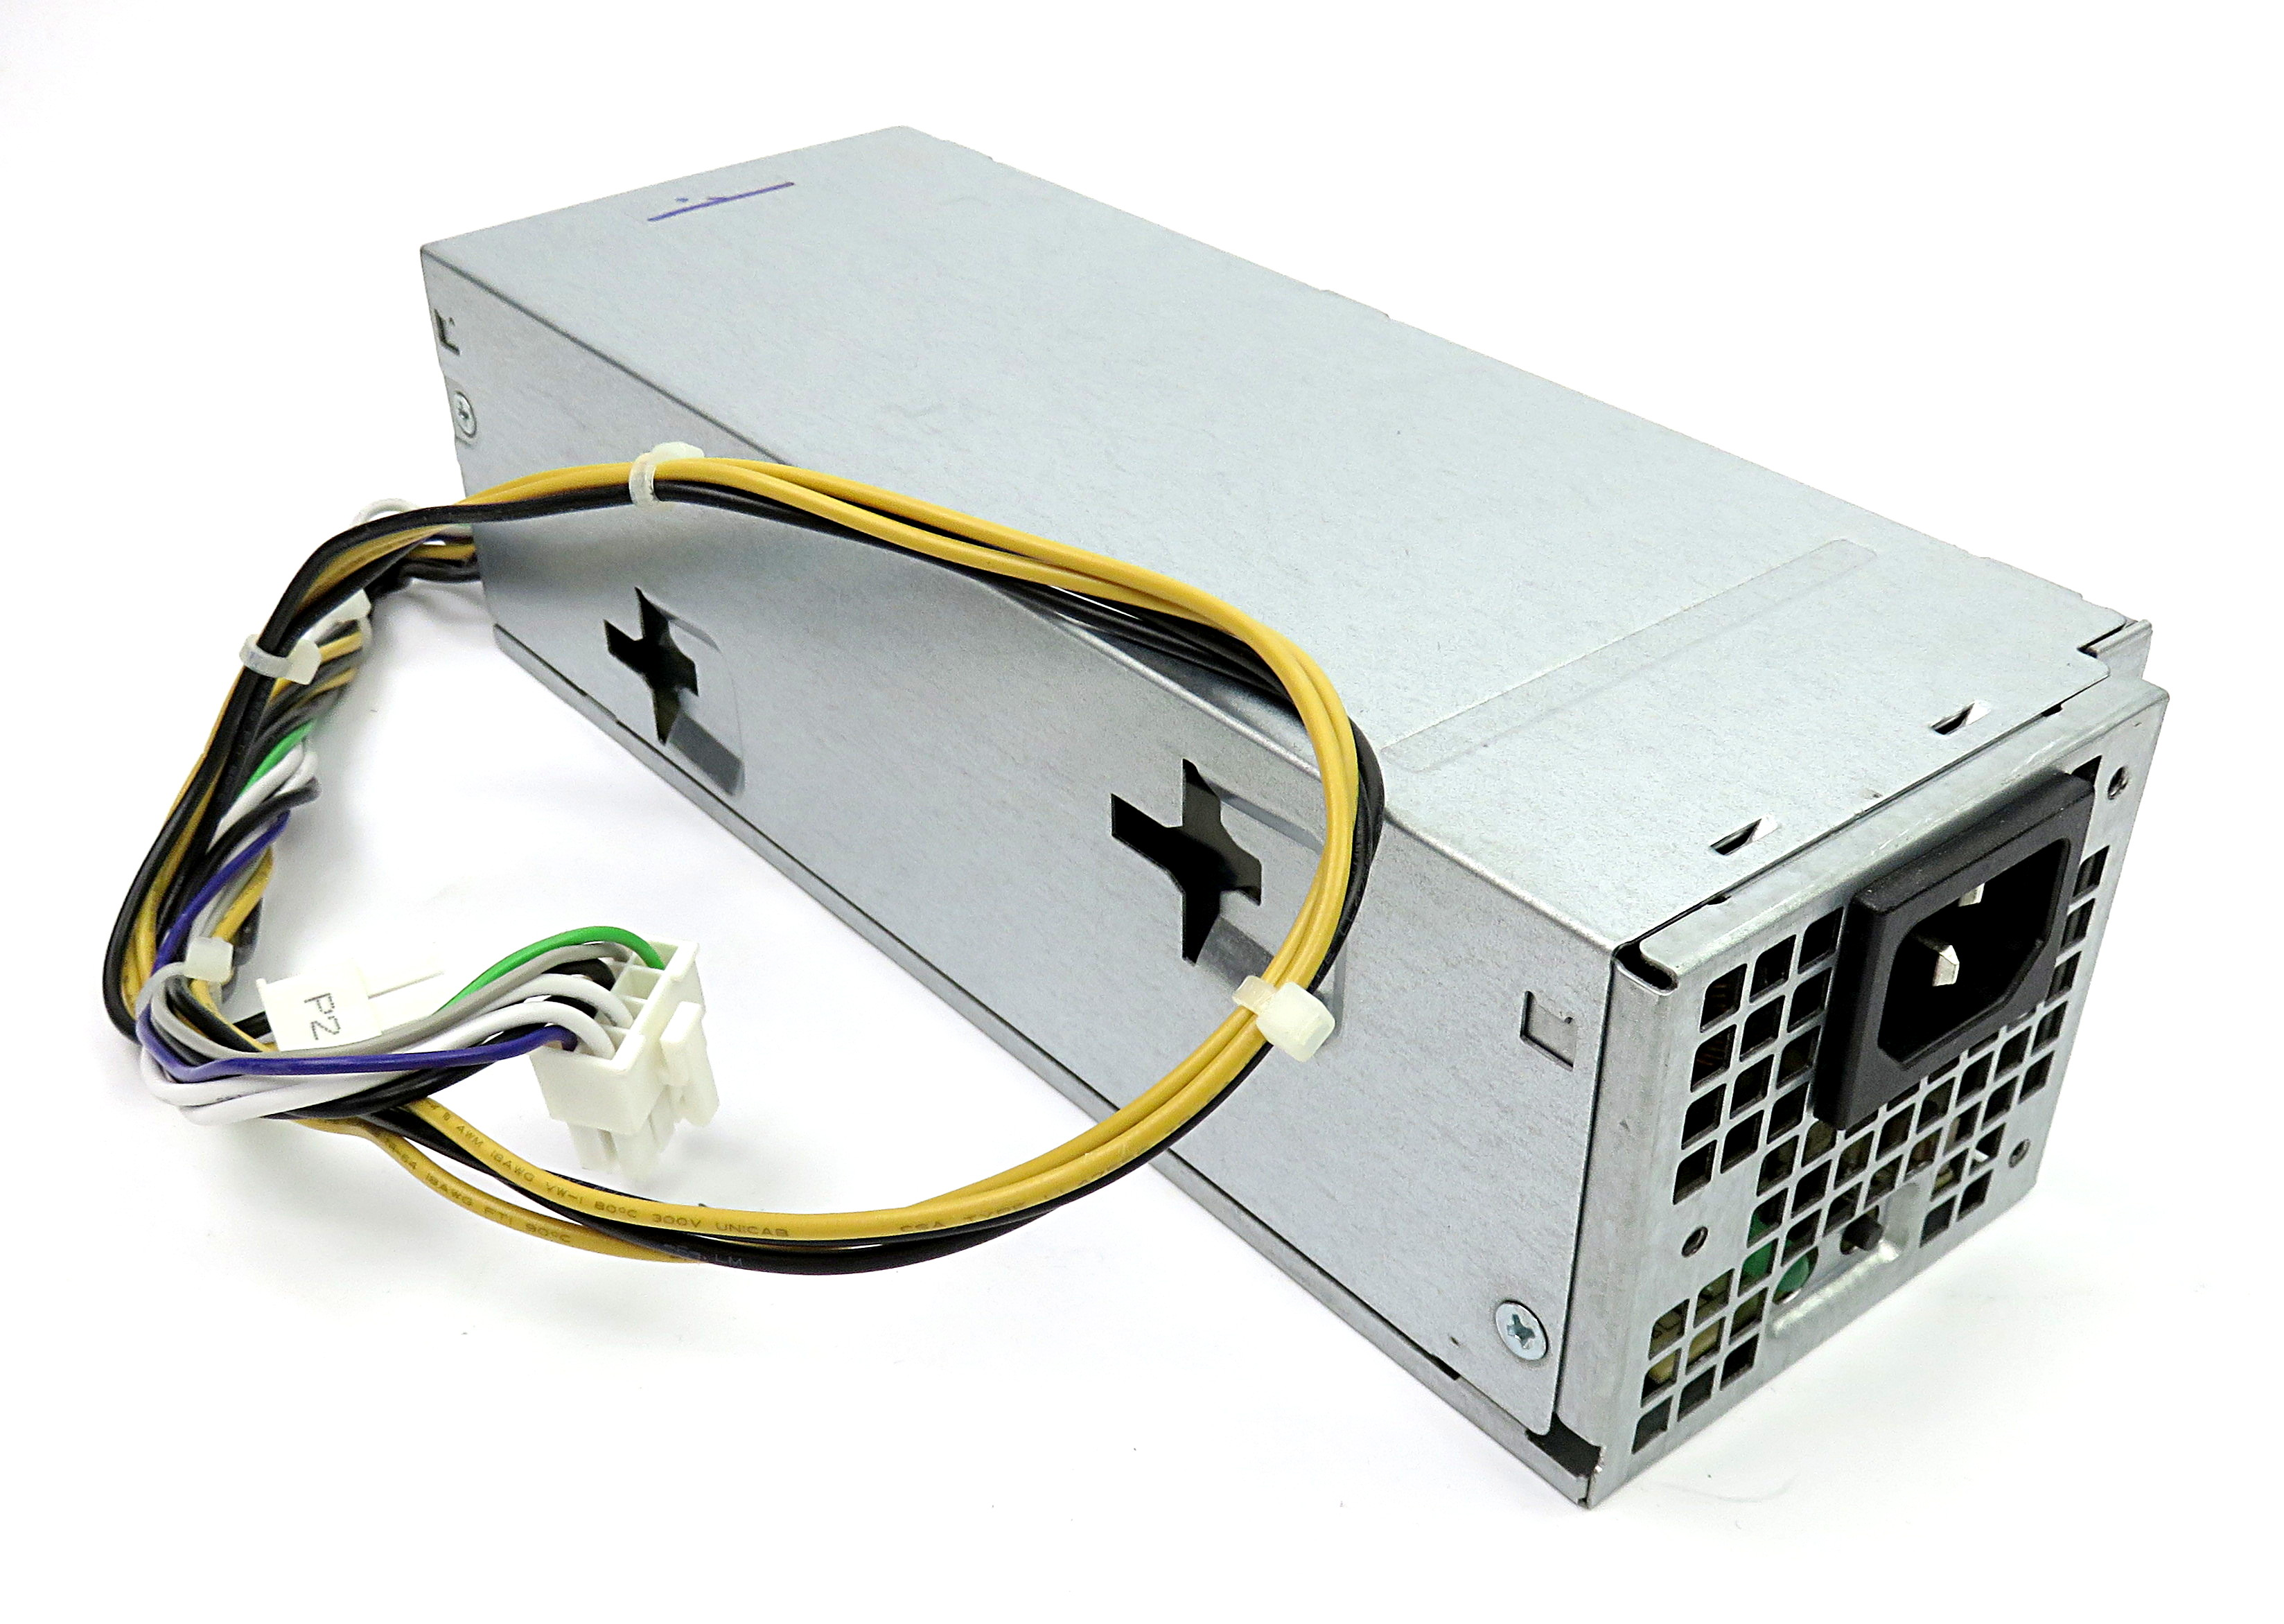 Dell 81VD0 180W 80+ Platinum Power Supply DPS-180AB-19 A f/ OptiPlex 7040 SFF